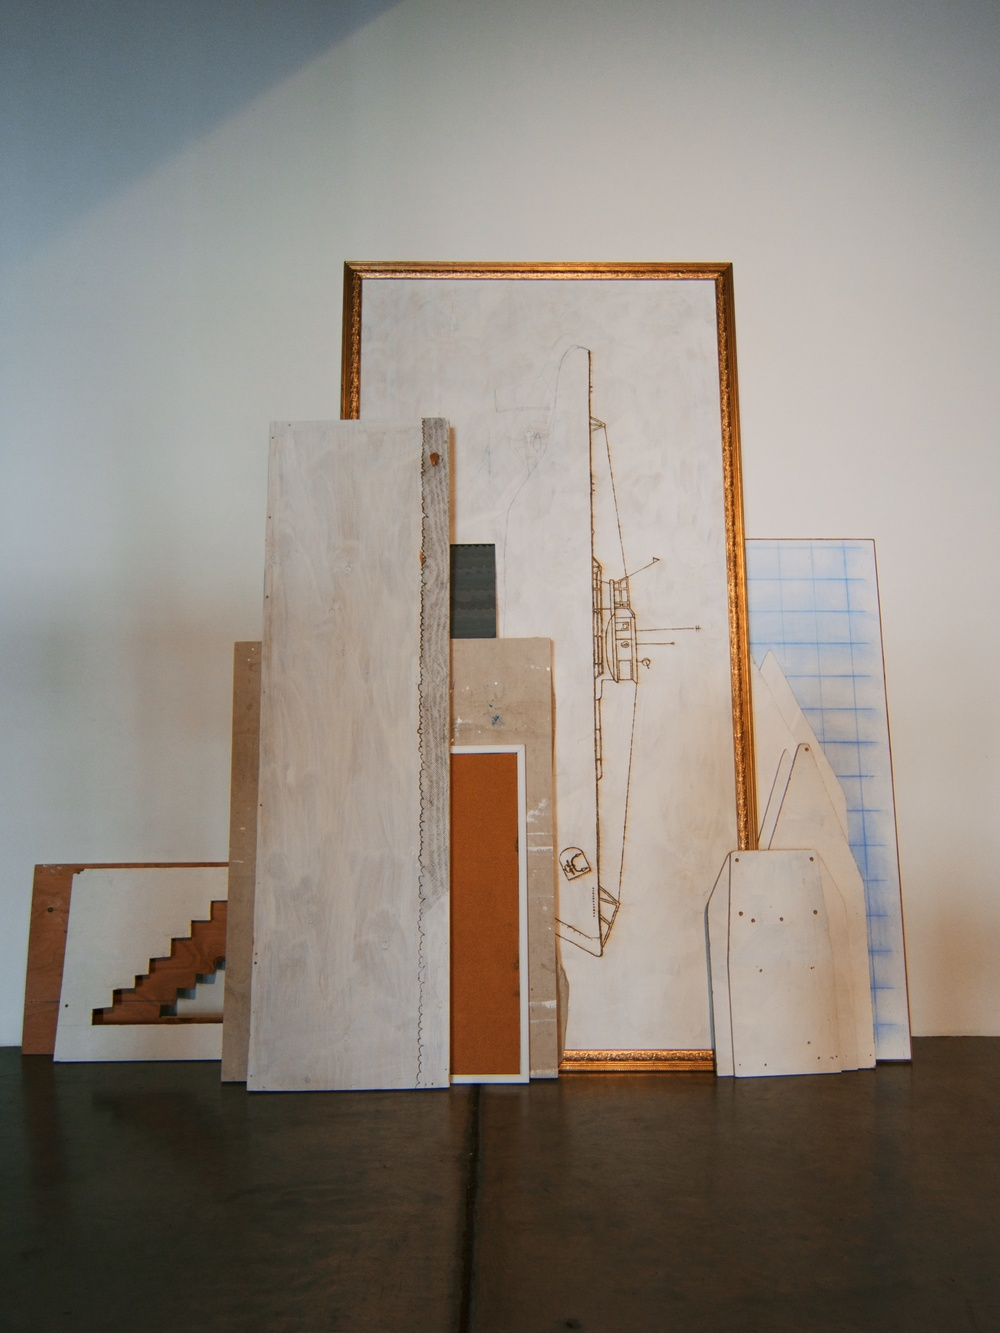 Various plywood scraps leaning against the wall containing abandoned projects that have been wood-burned, painted, and cut into, 8x8 feet, 2014.